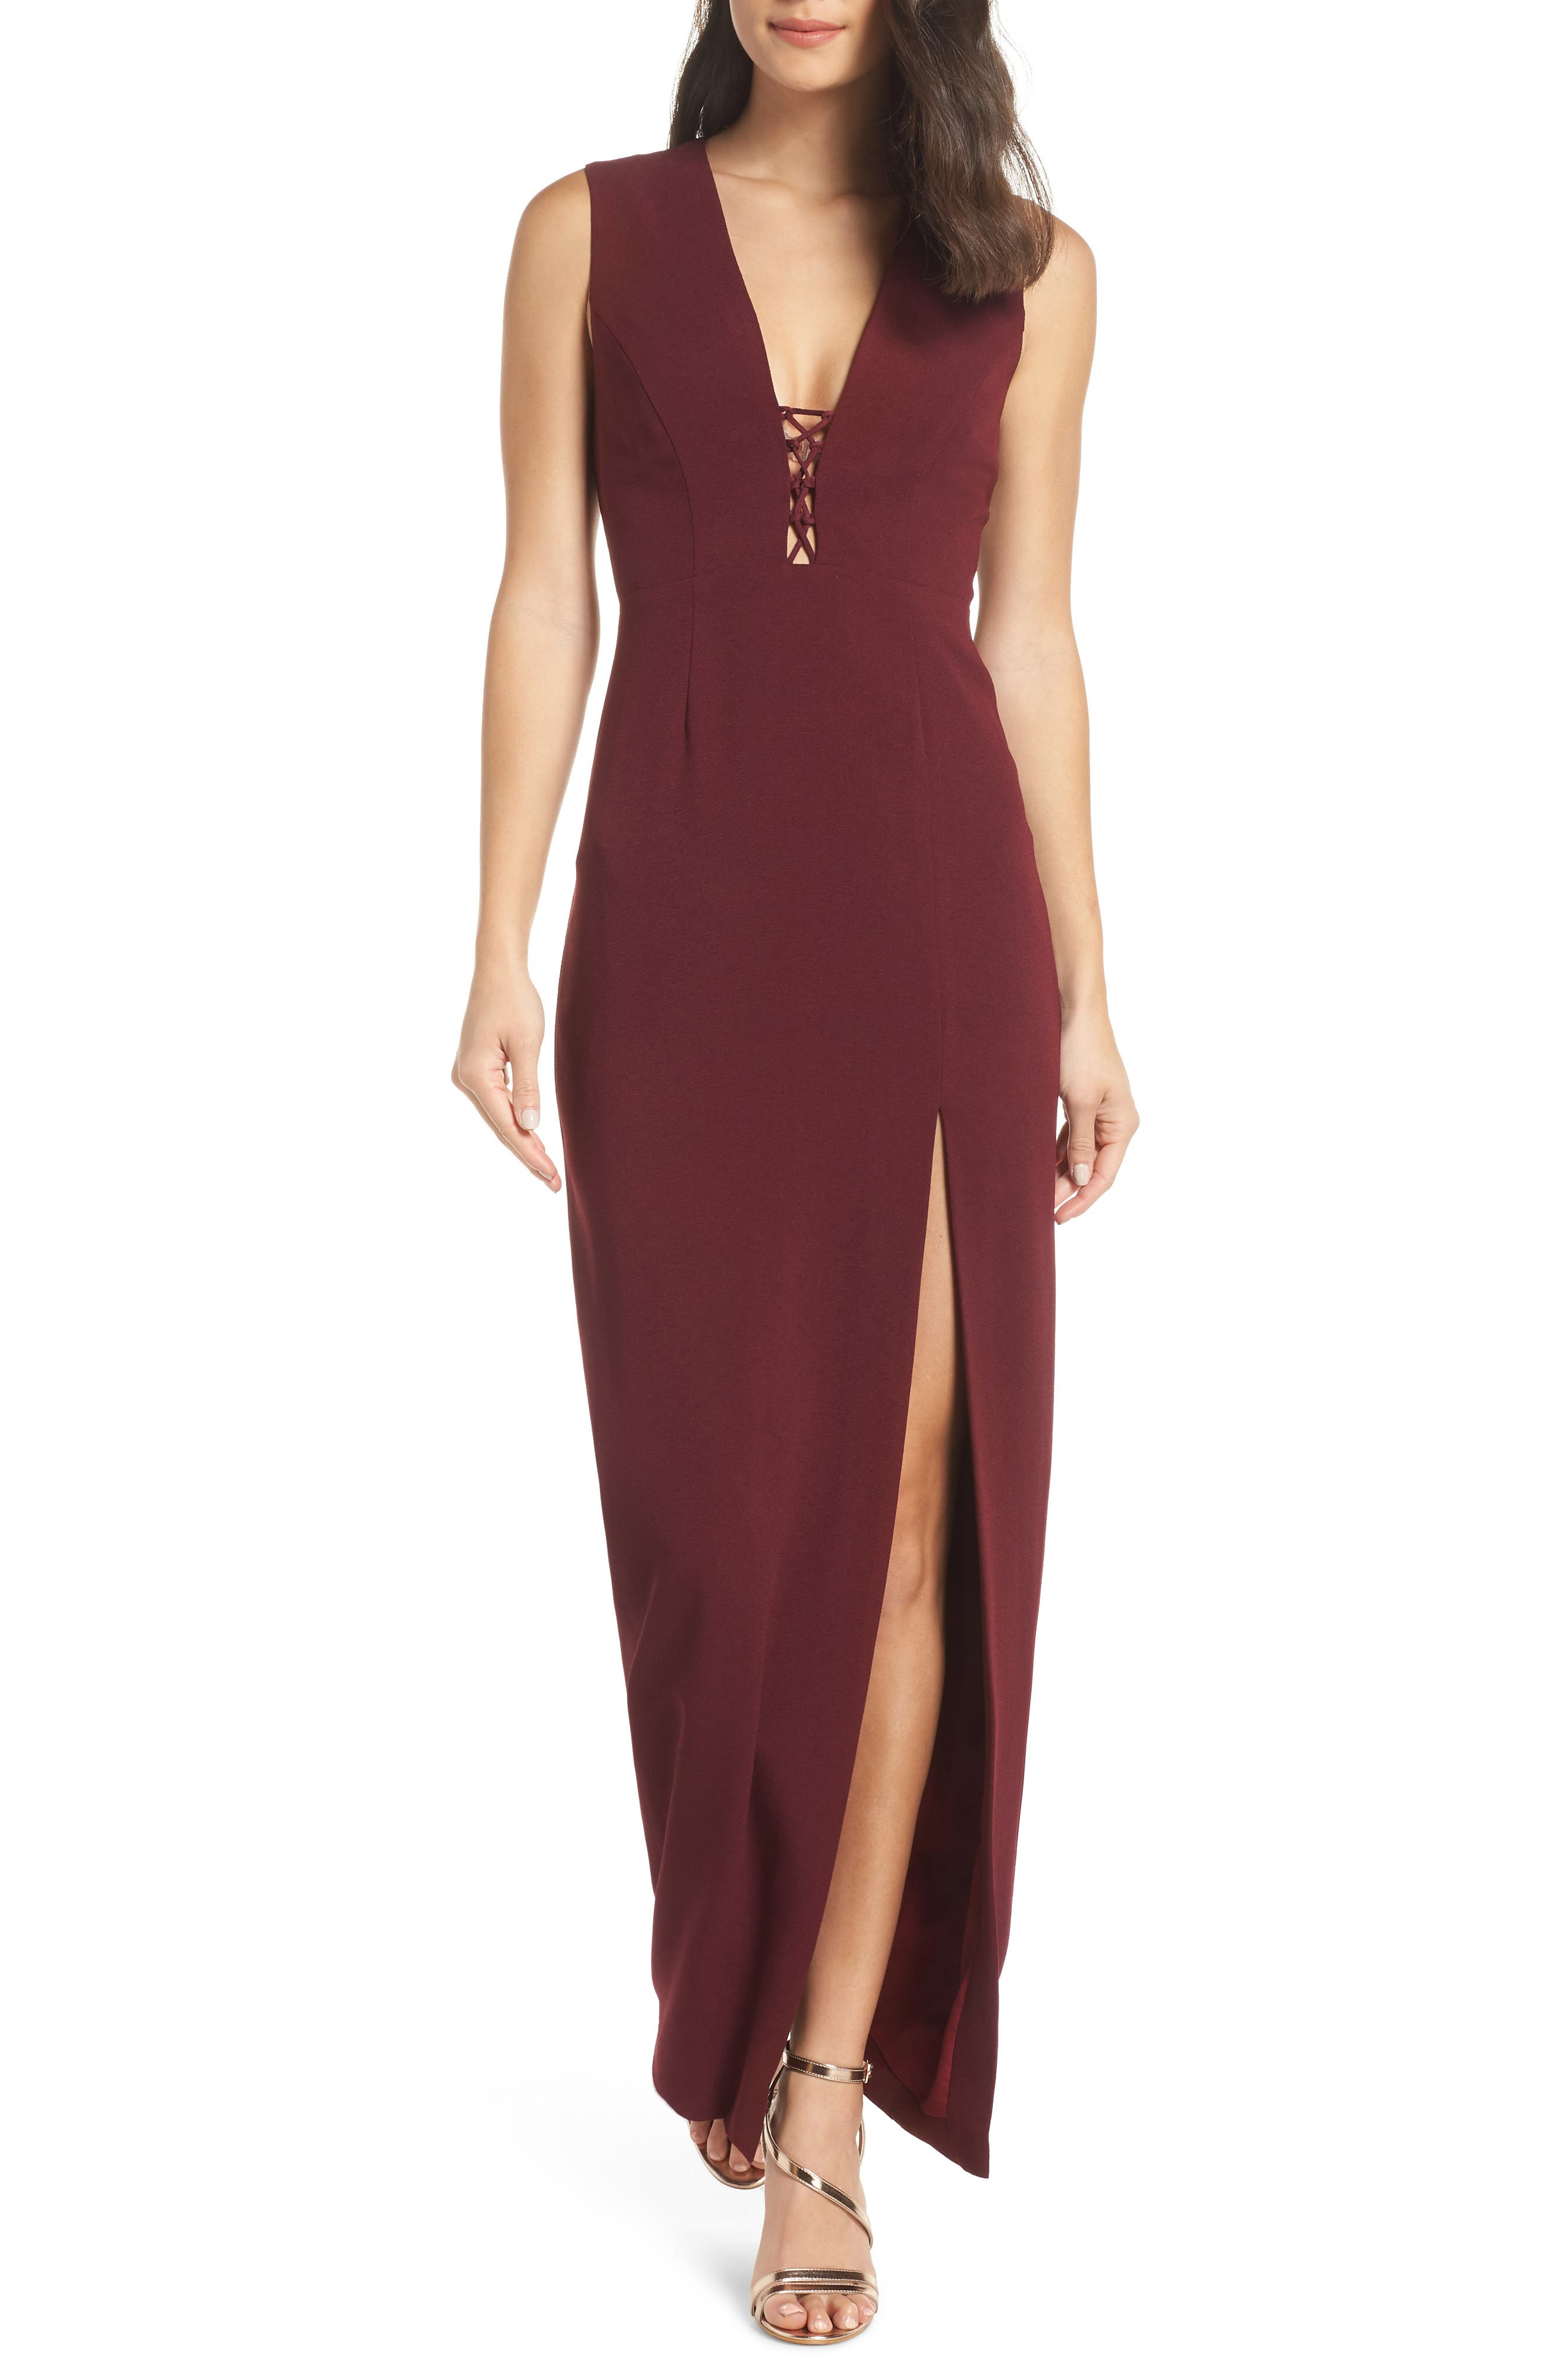 WAYF The Casey Plunge Neck Gown in Cabernet